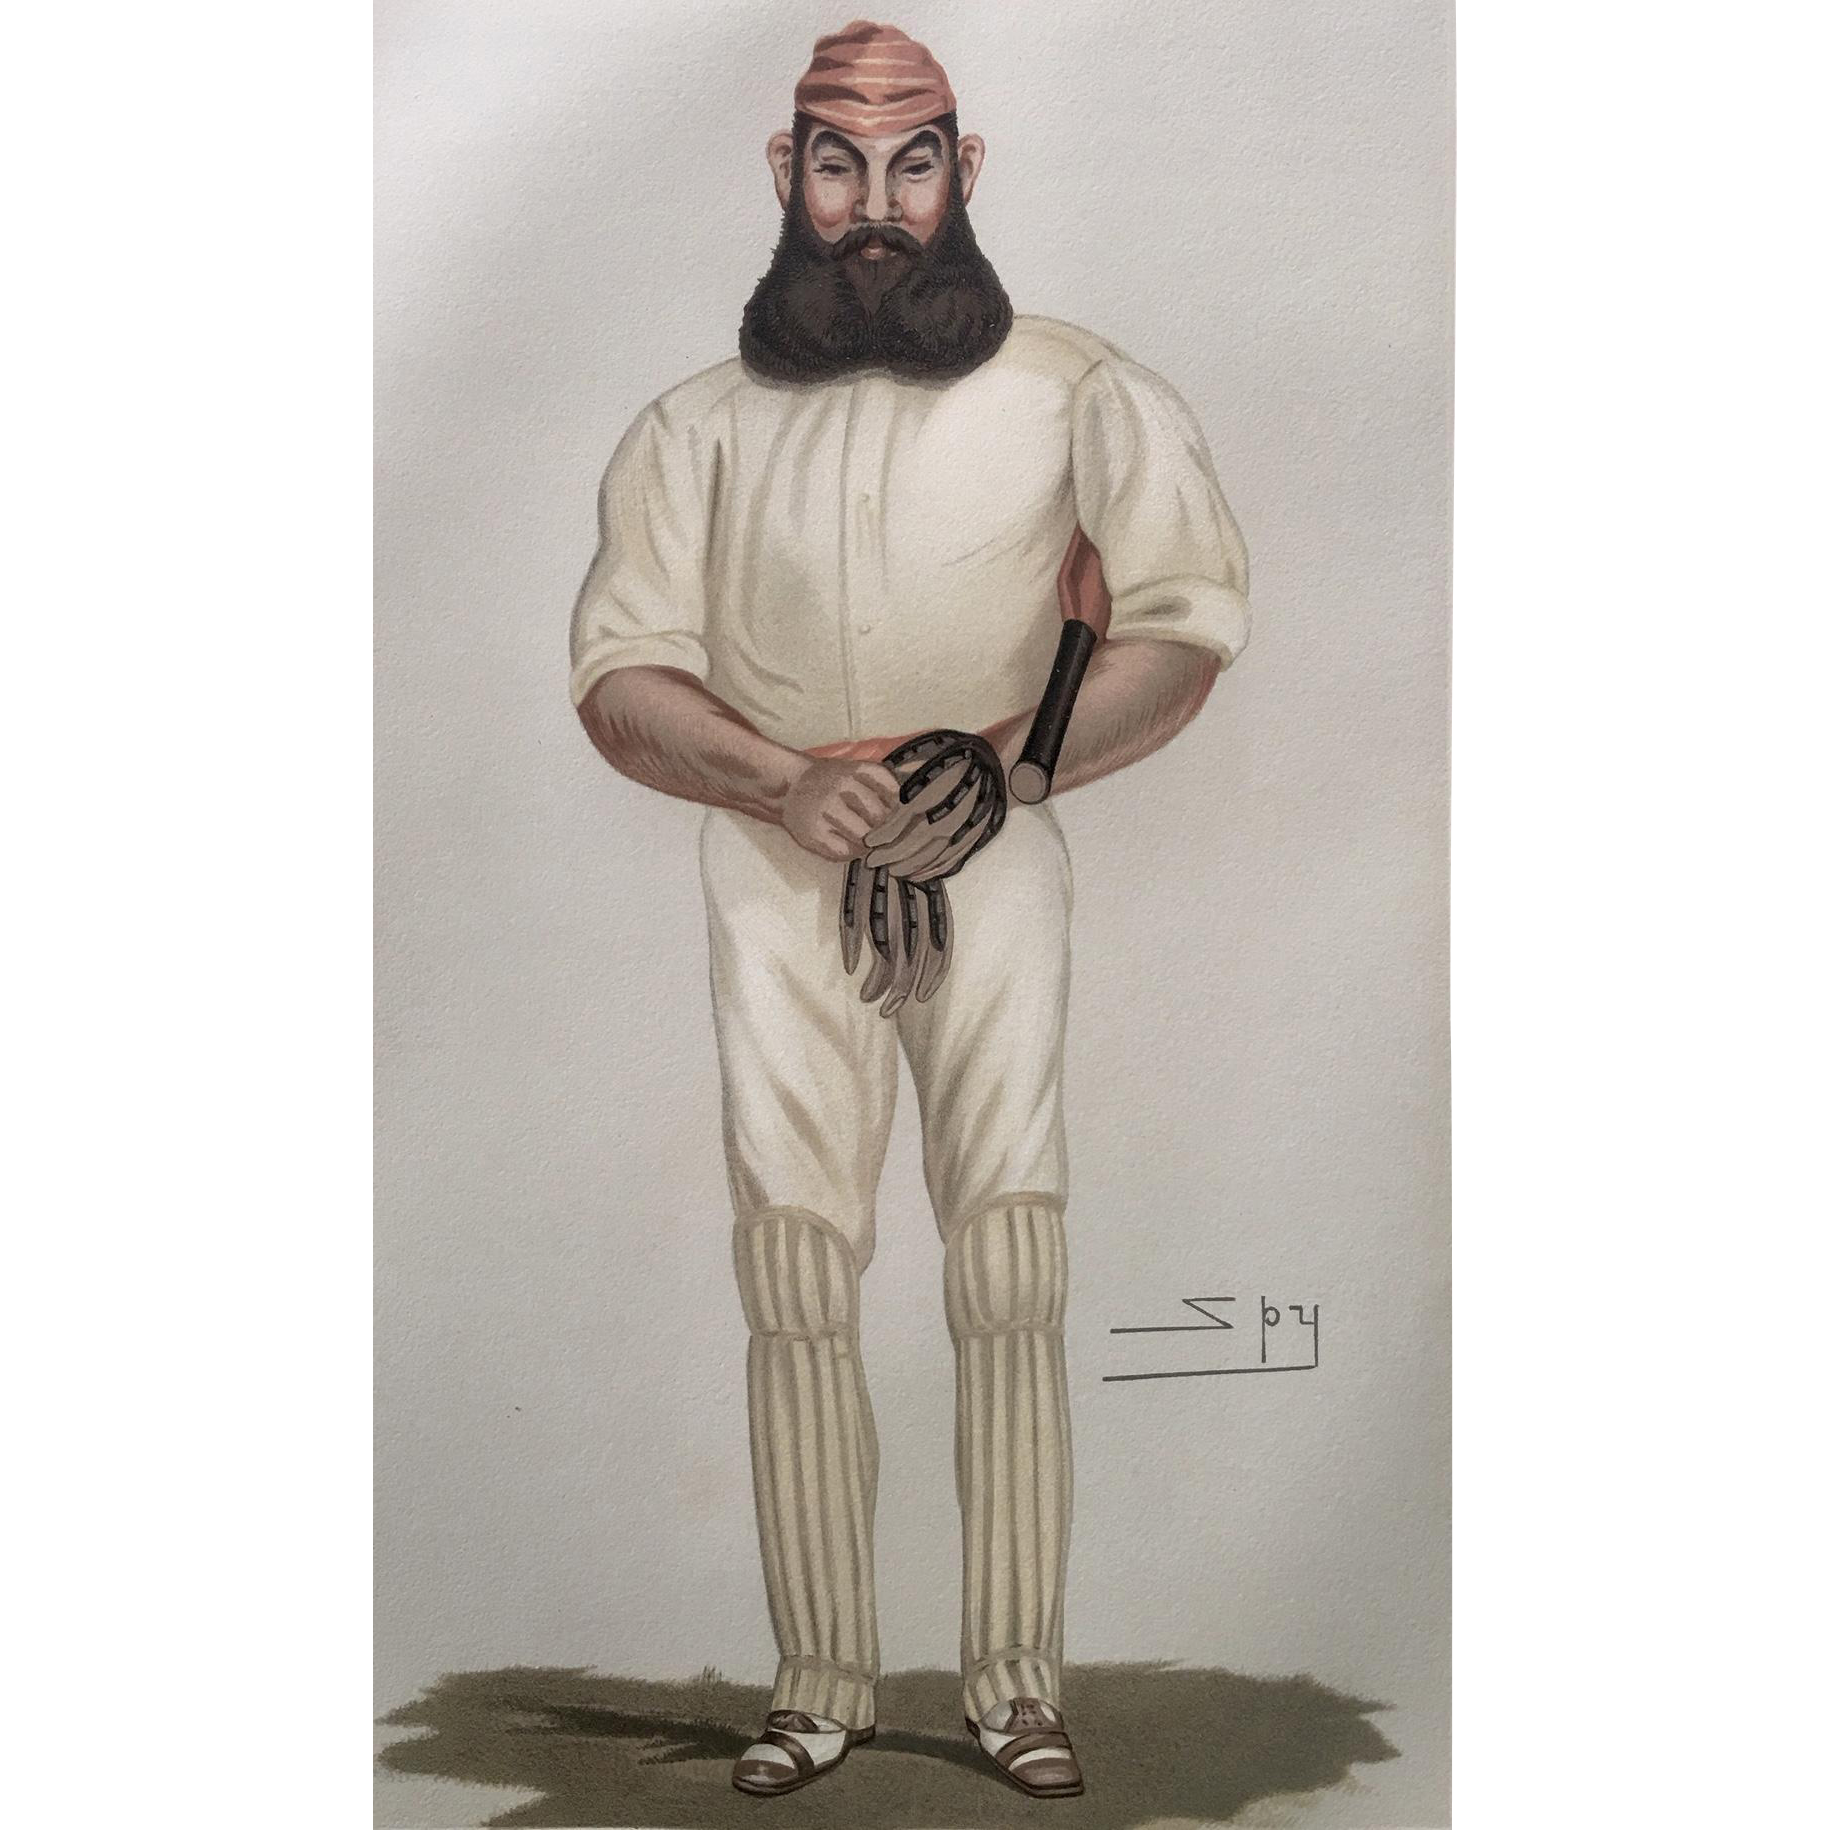 1877 Original Vanity Fair / SPY Cricket Print - W.G. Grace